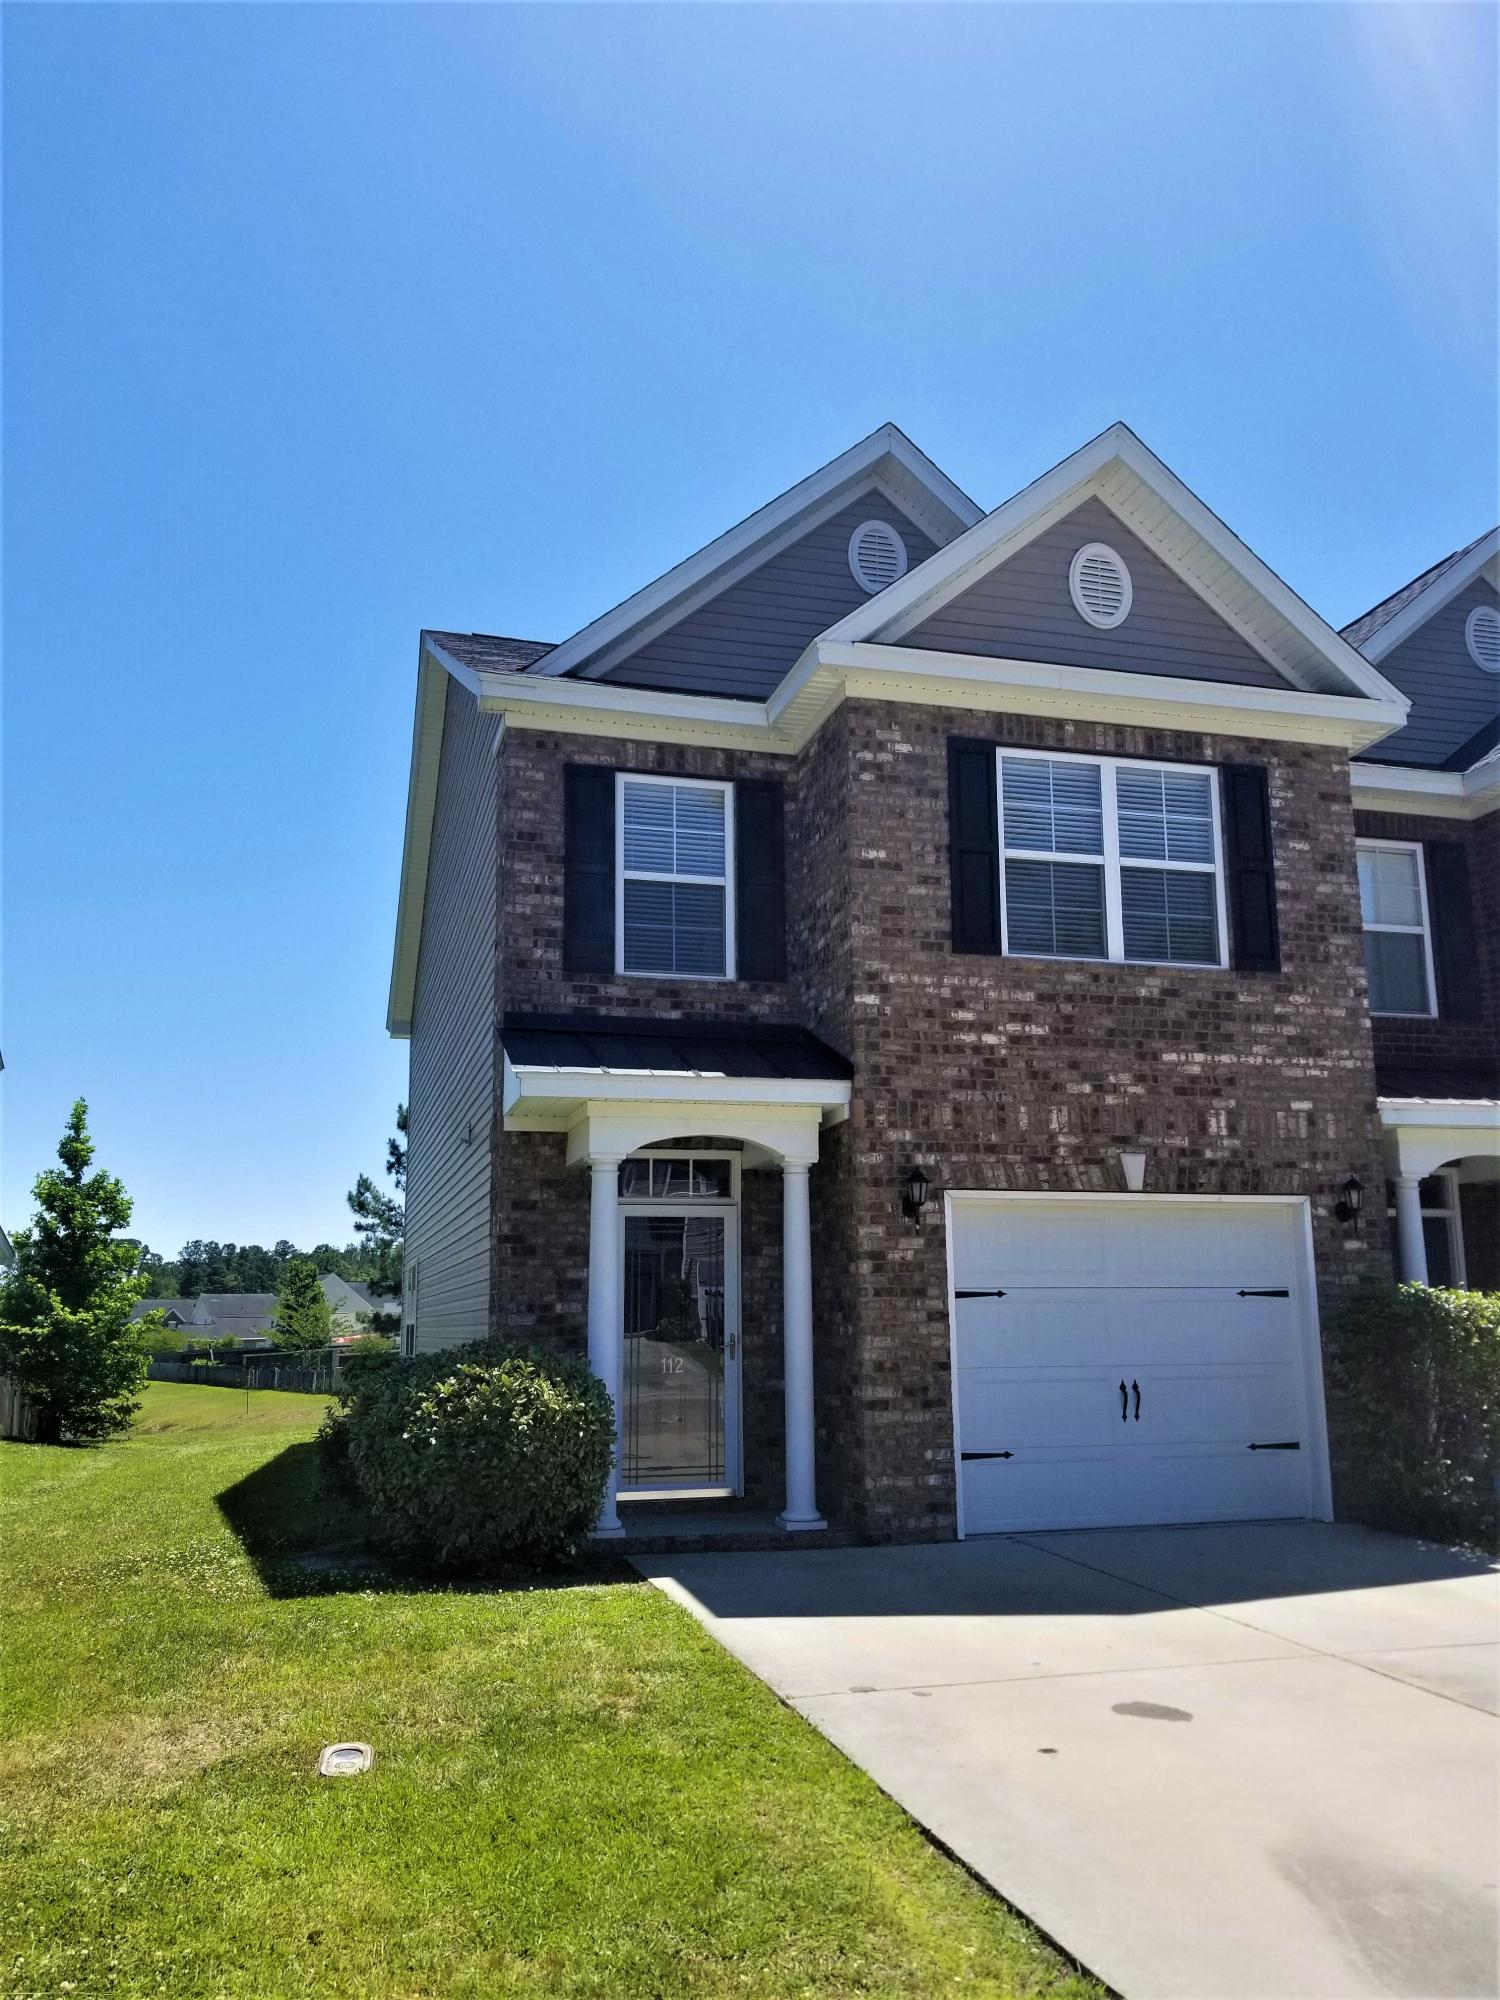 Berkeley Commons Townhomes Homes For Sale - 112 Lamplighter, Summerville, SC - 11